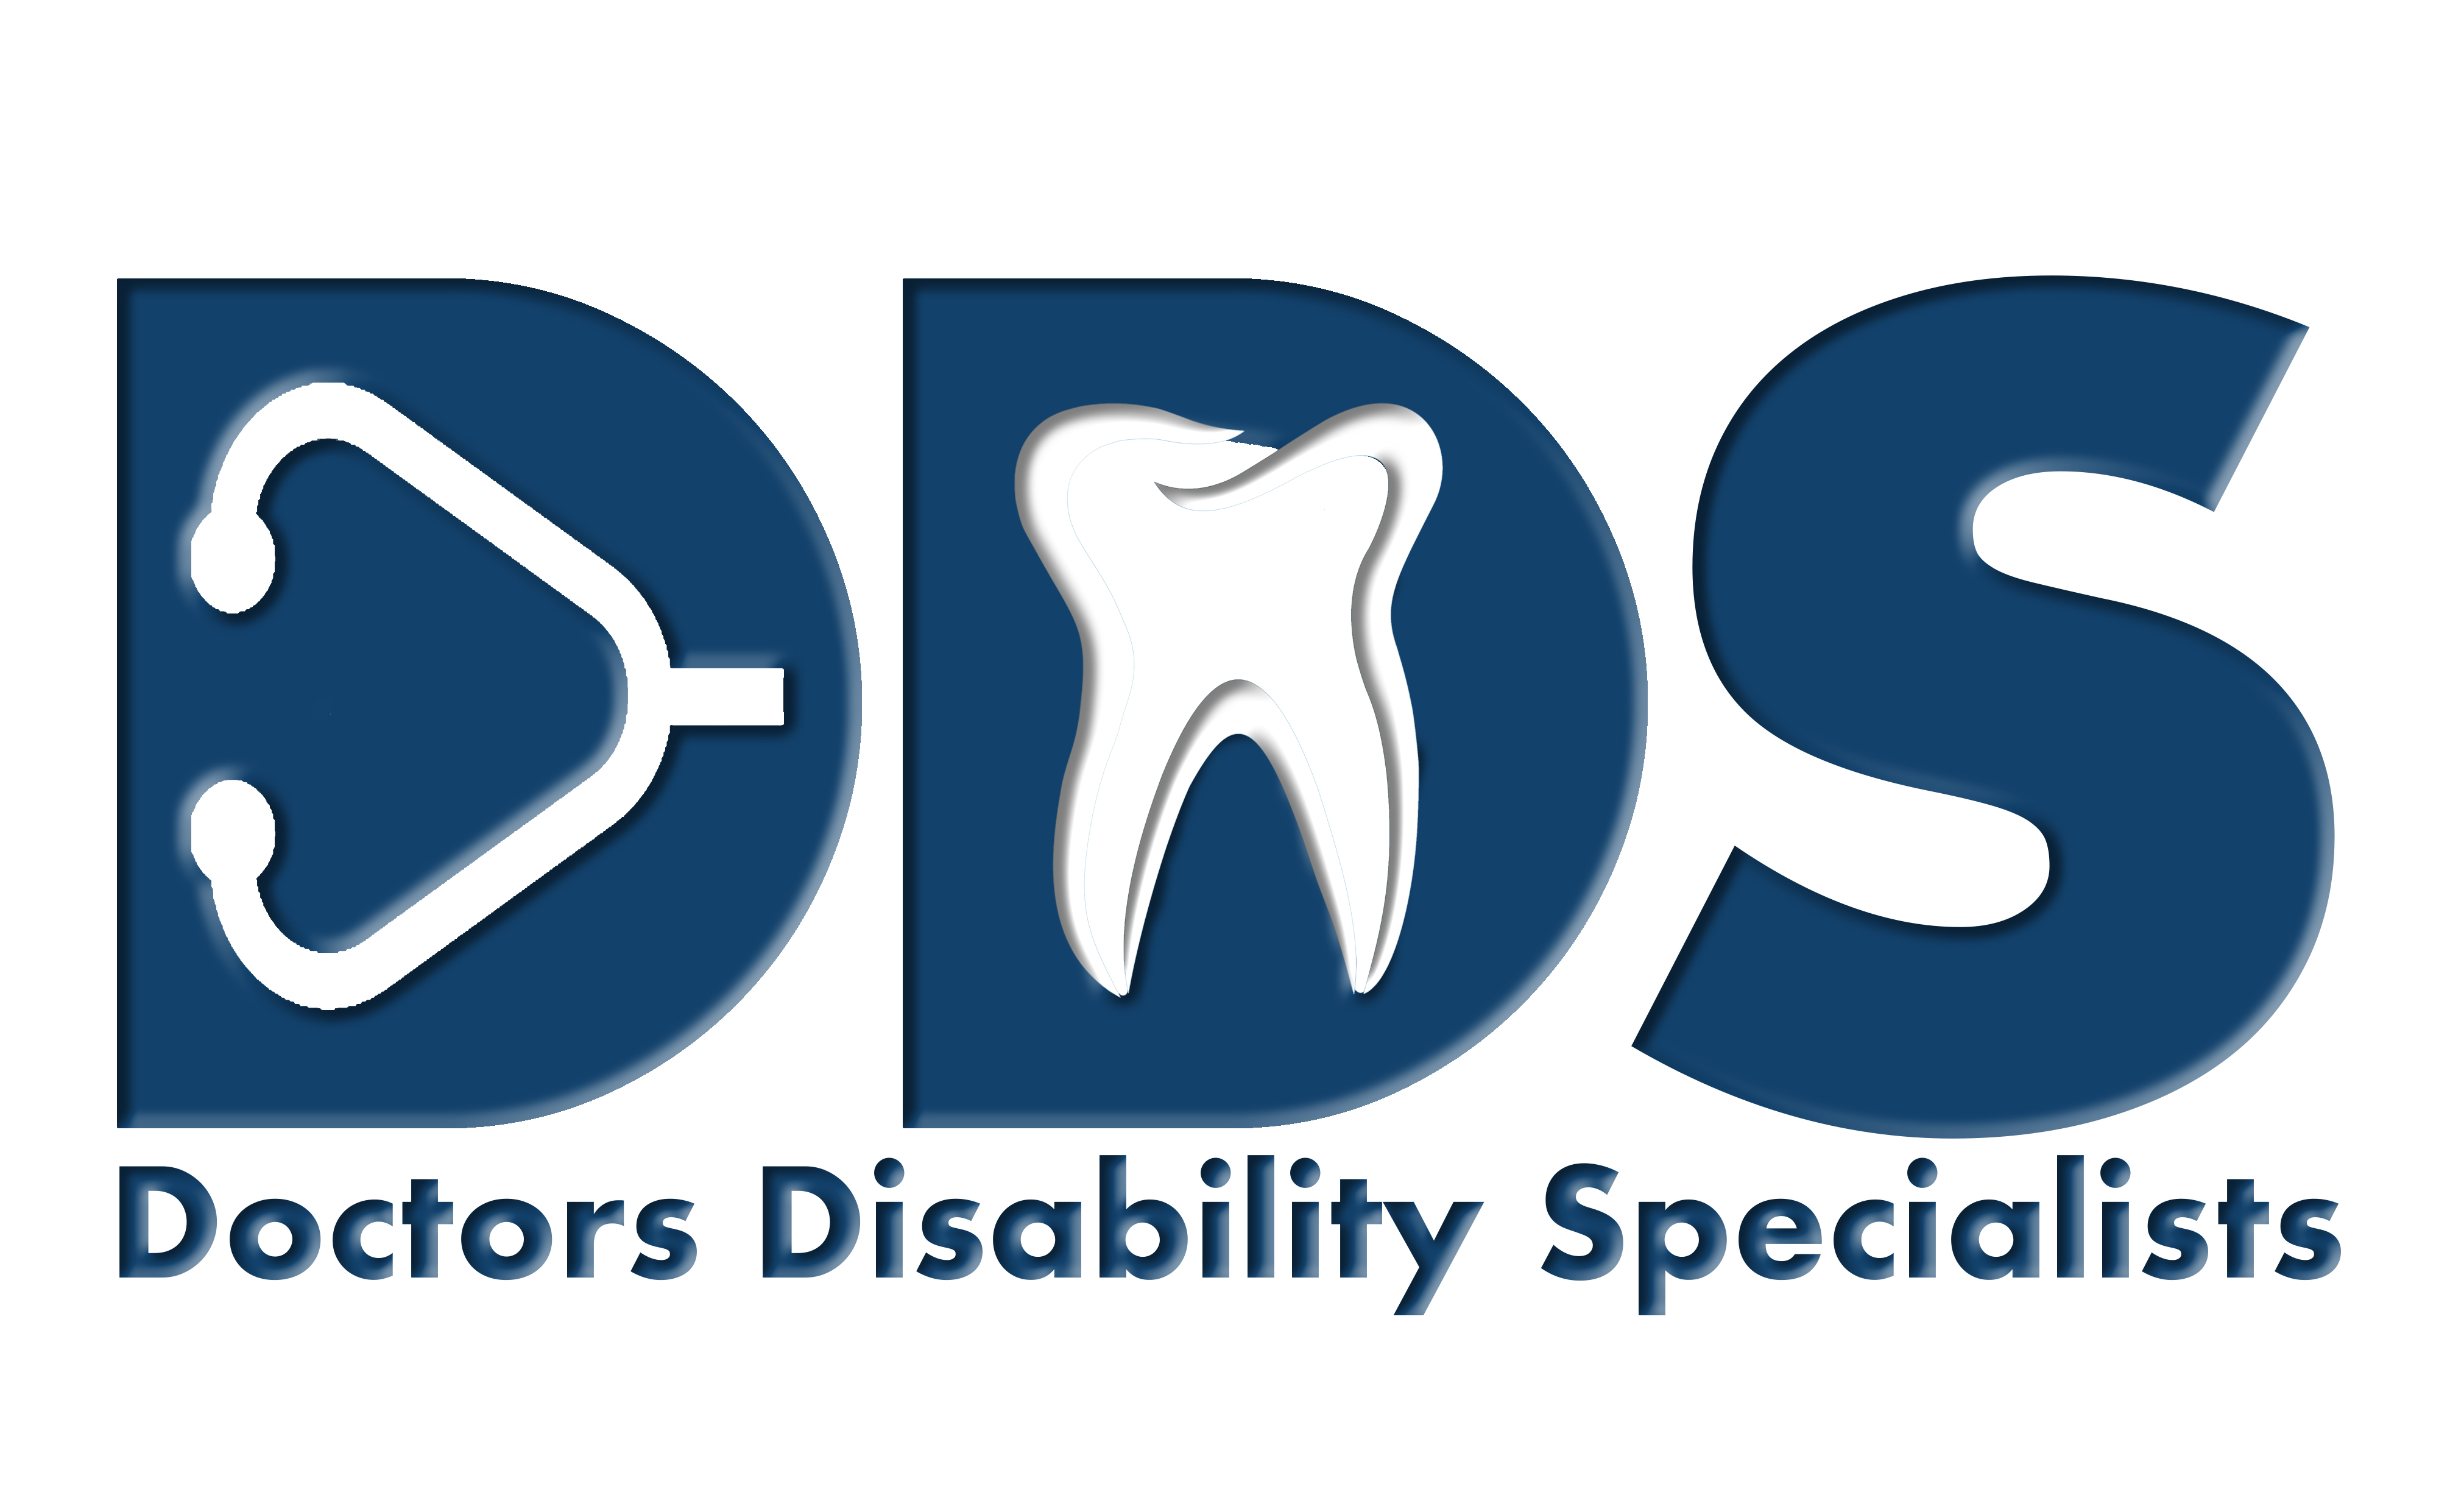 Doctors Disability Specialists Logo